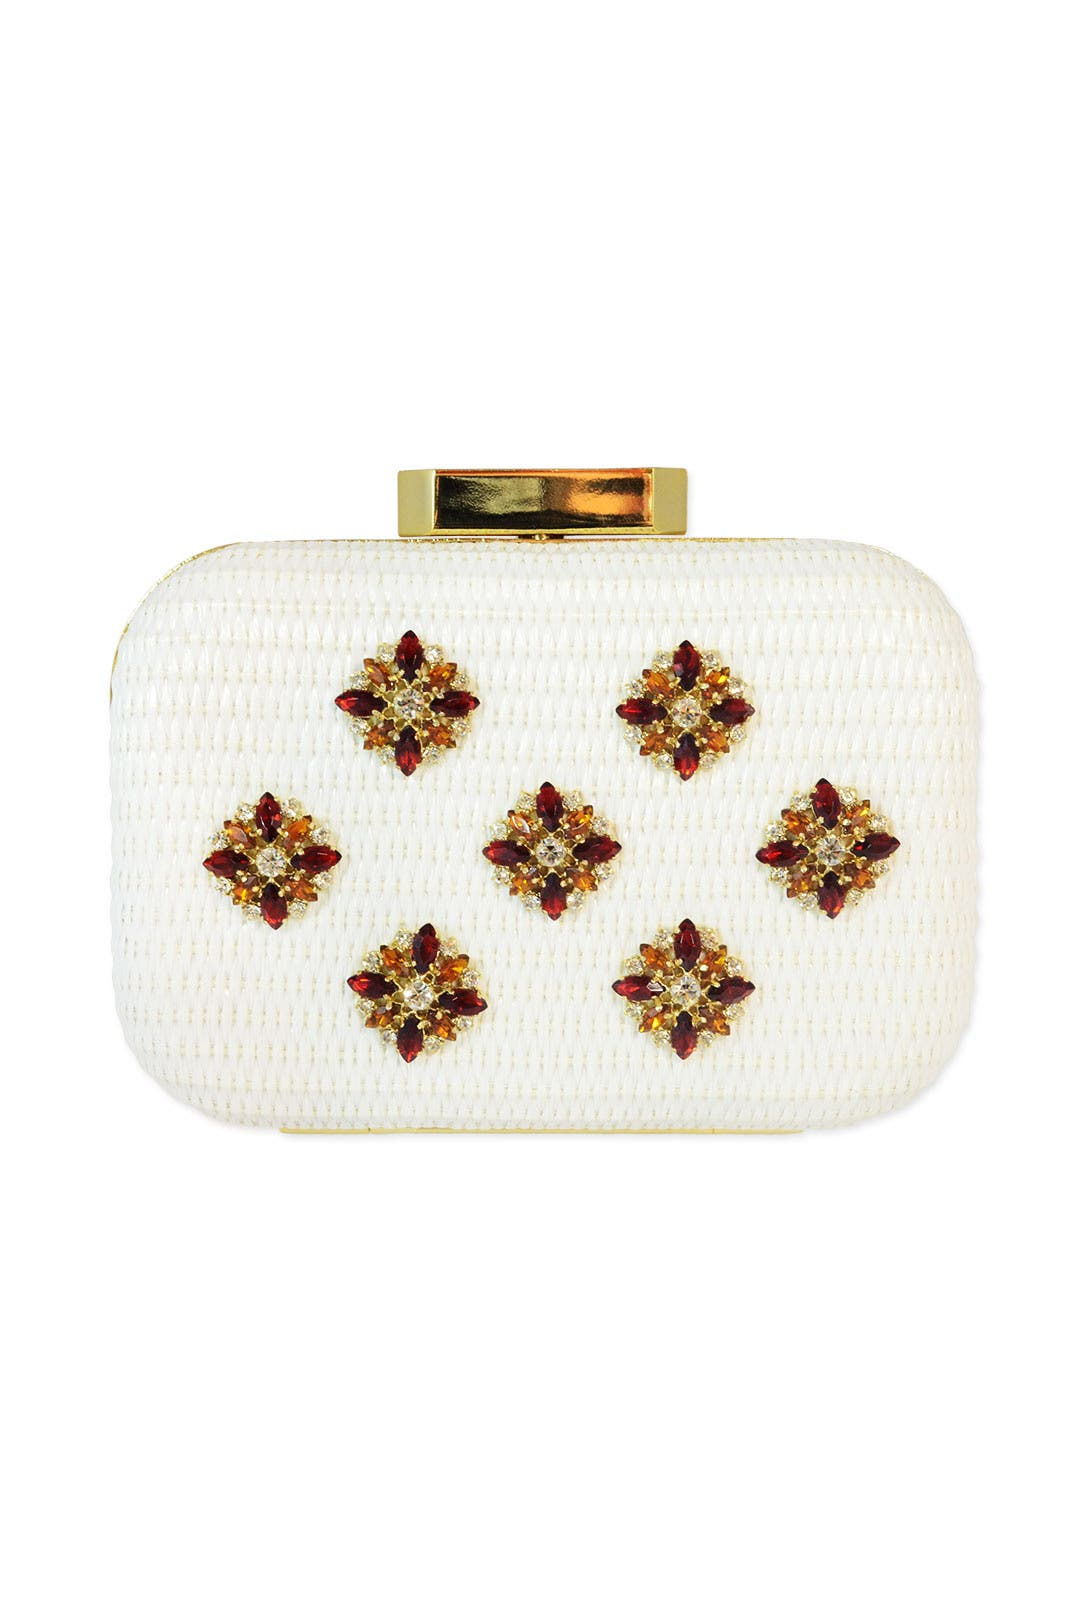 Gilly Garden Minaudiere by Badgley Mischka Handbags